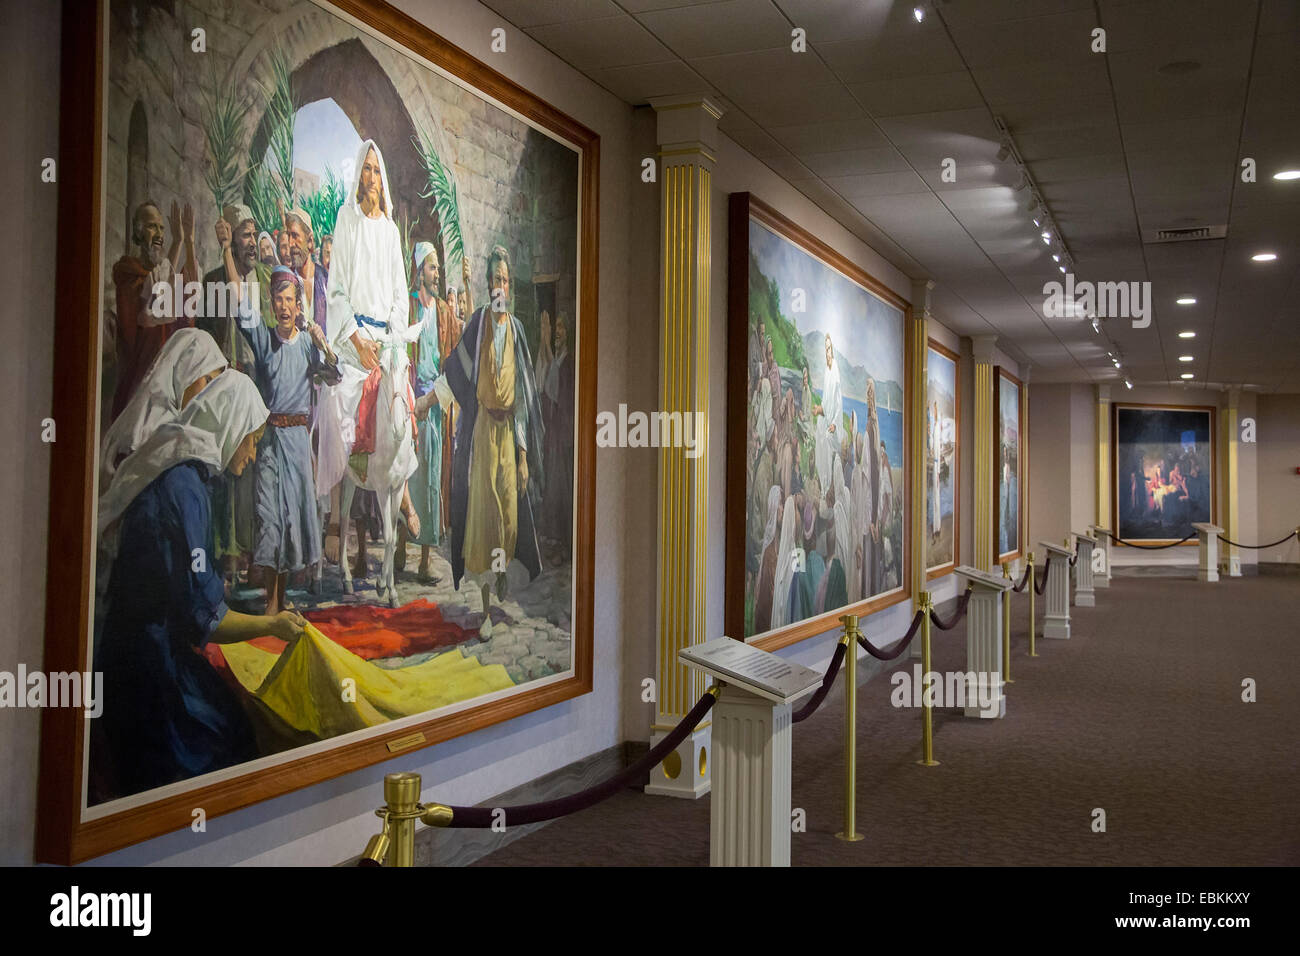 Paintings Of The Life Of Jesus Imágenes De Stock & Paintings Of The ...